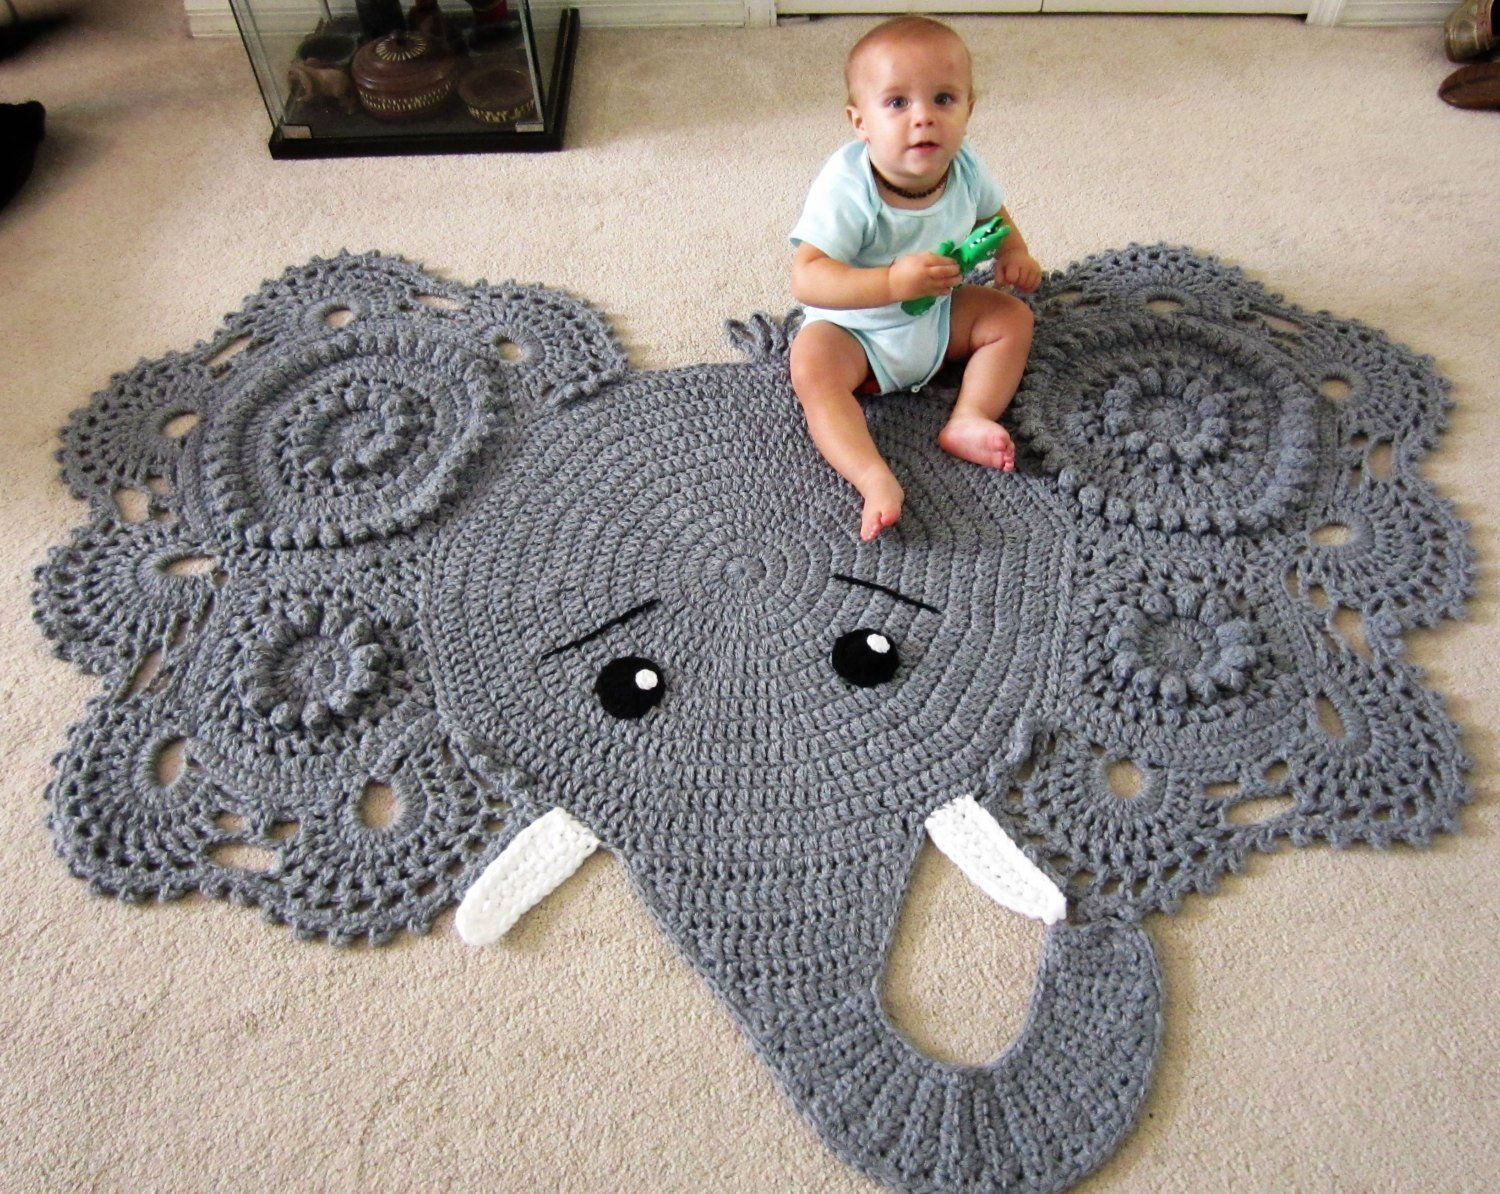 Elephant Rug Crochet Elephant Crochet Elephant Rug Elephant Elephant Rug Crochet Crochet Elephant Baby Rugs